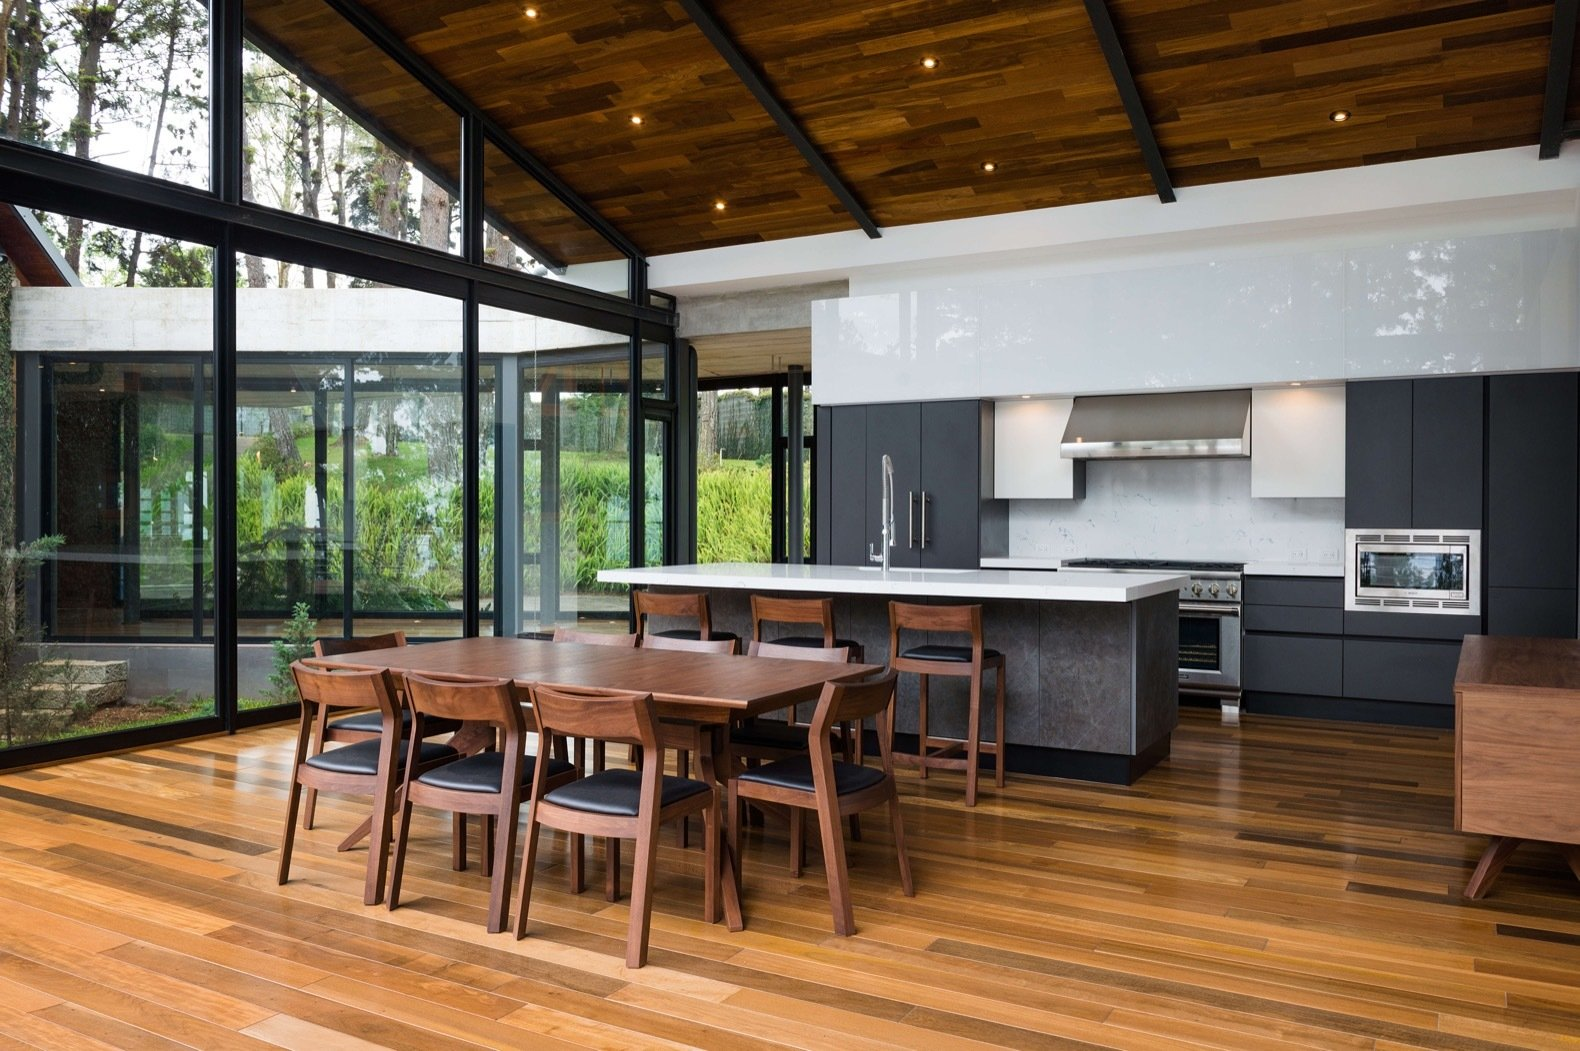 Kitchen, Medium Hardwood Floor, Range, Range Hood, Recessed Lighting, Refrigerator, White Cabinet, and Microwave Full-height glazing floods the interiors with natural light.  Photo 11 of 15 in A Small Guatemalan Hut Gains a Thoughtful Glazed Expansion